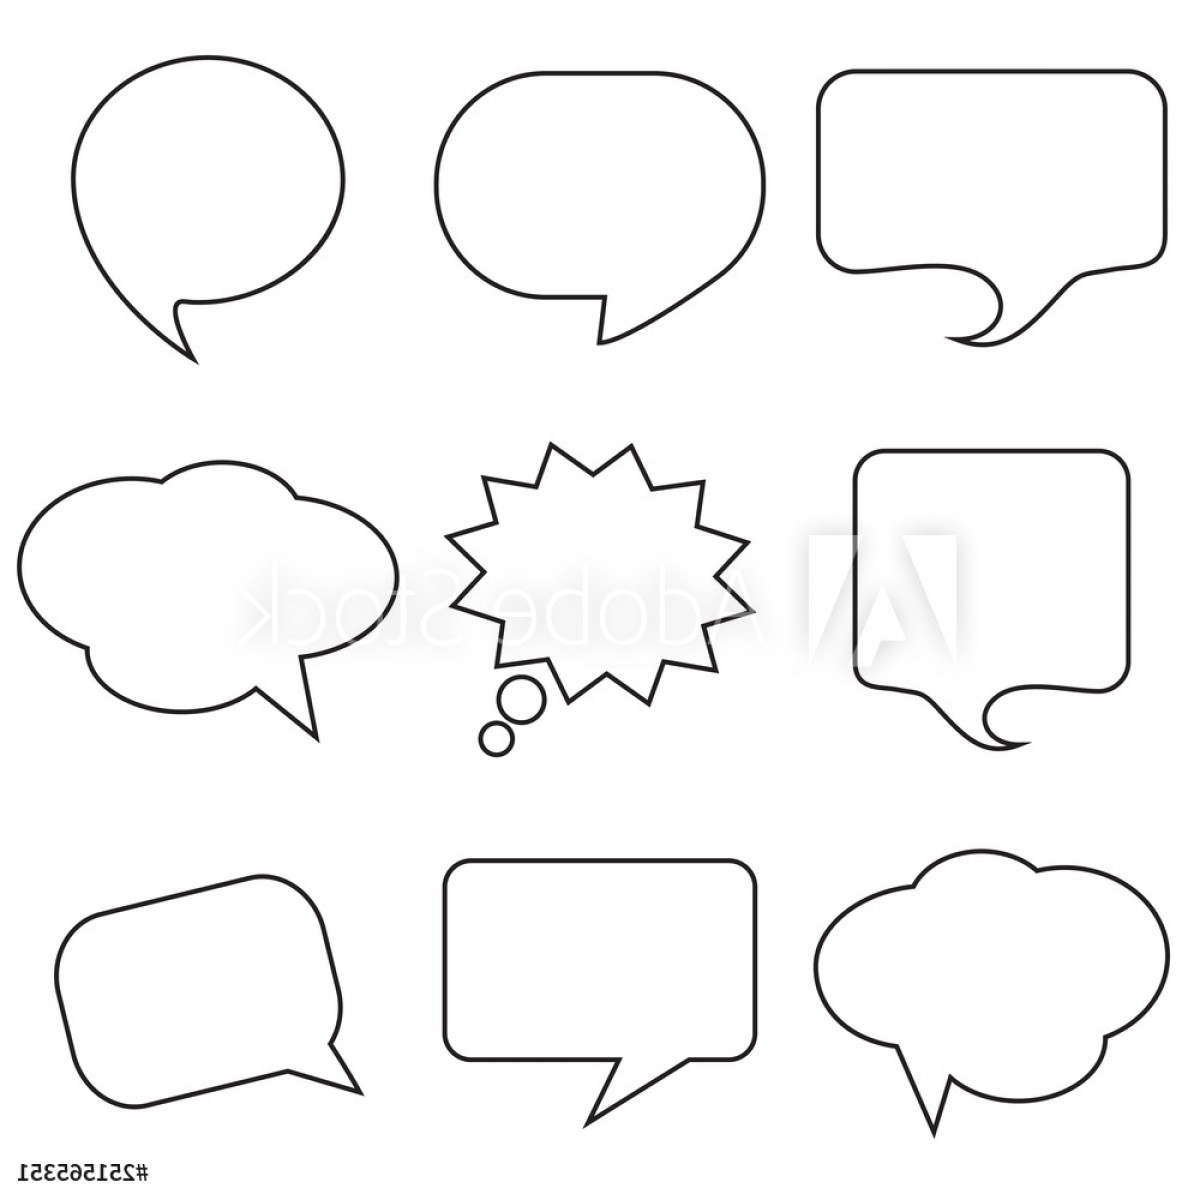 Amazing Window Vector: Window Stickers Graffiti Collage Black Speech Bubble Skech Set Isolated On White Background Vector Illustration